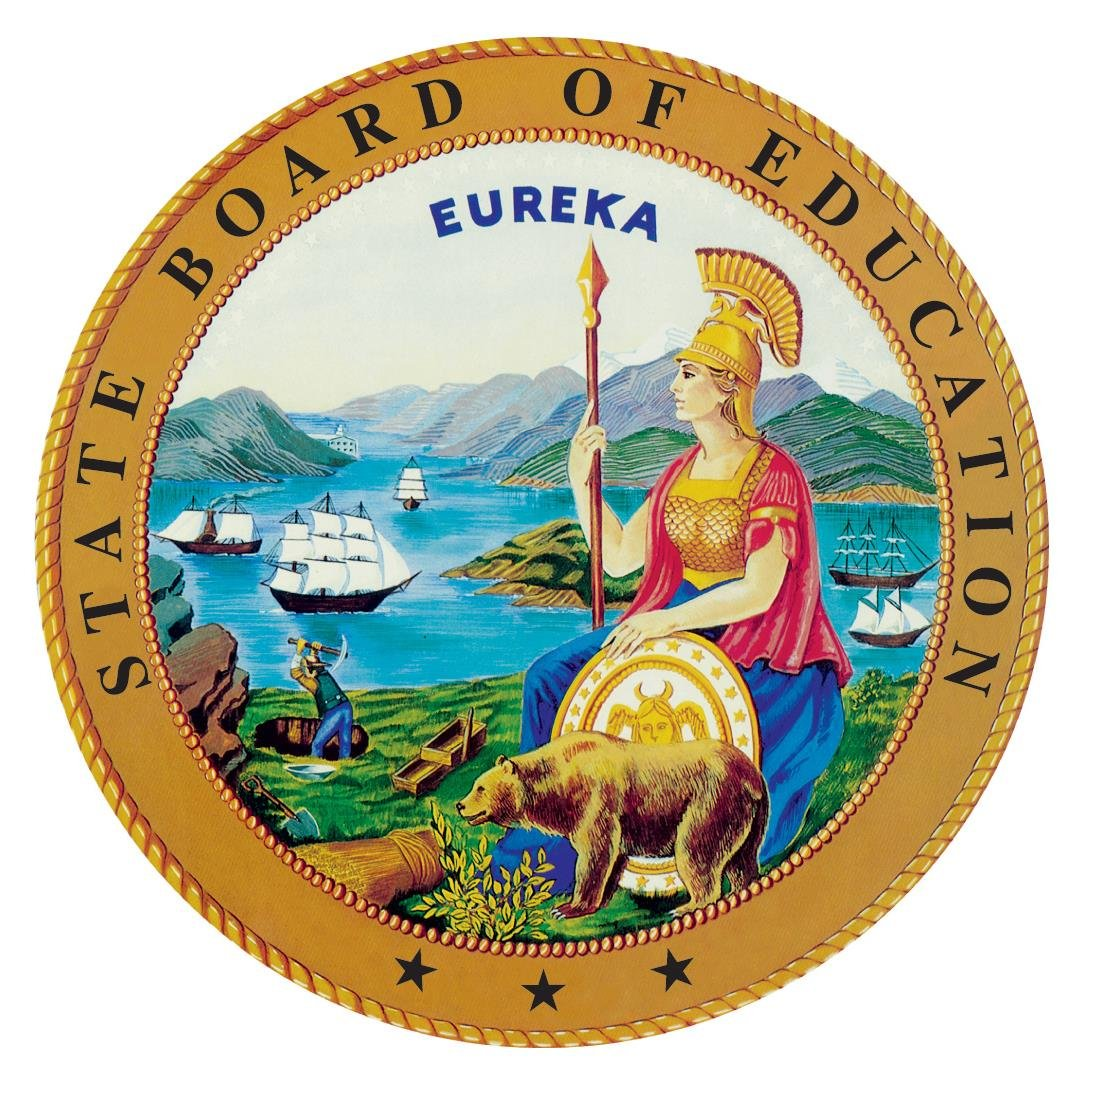 Official news and information from the California State Board of Education